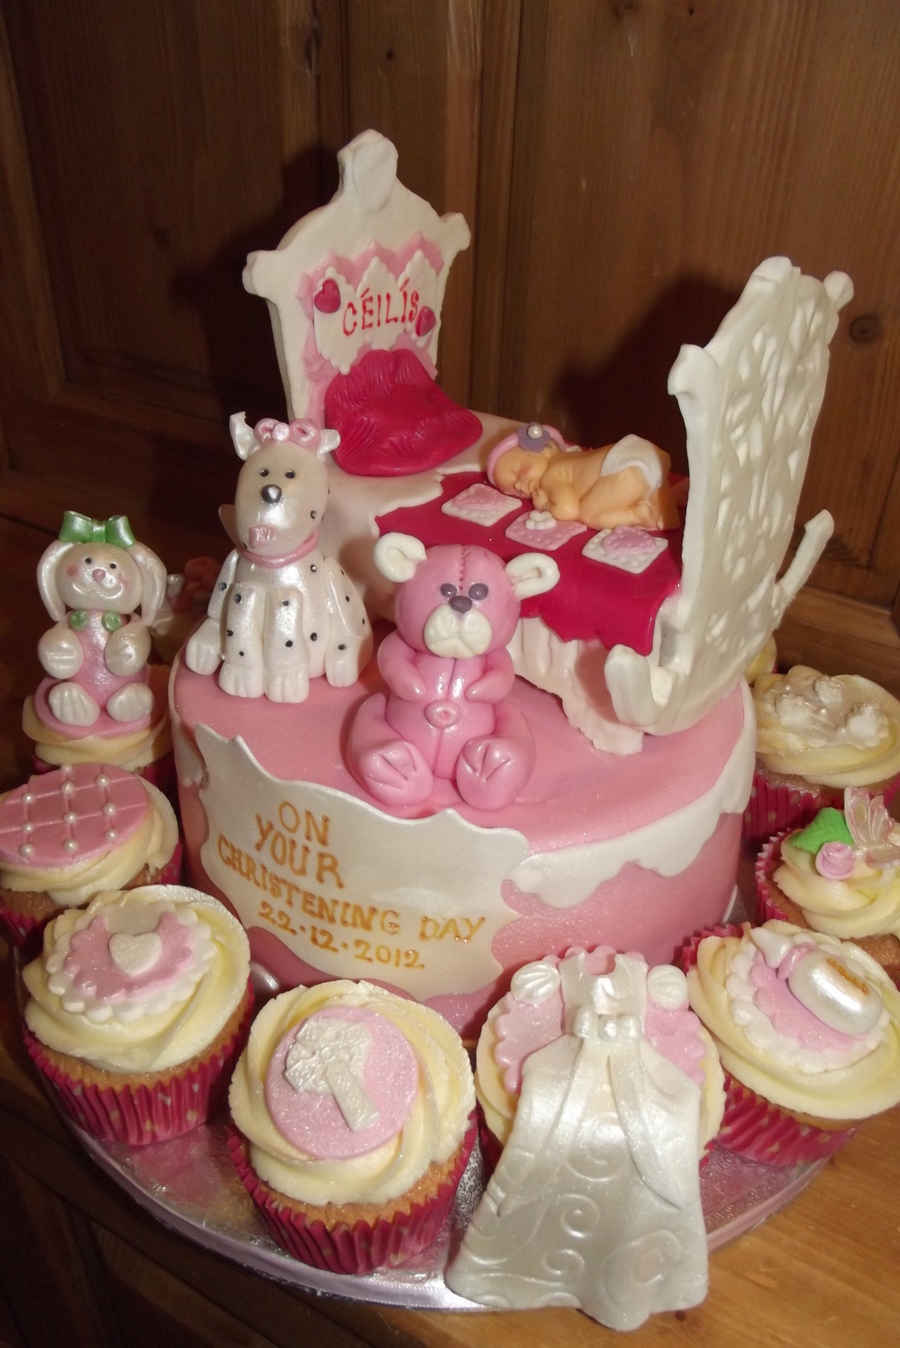 Bay Shower / Christening Cradle on Cake Central